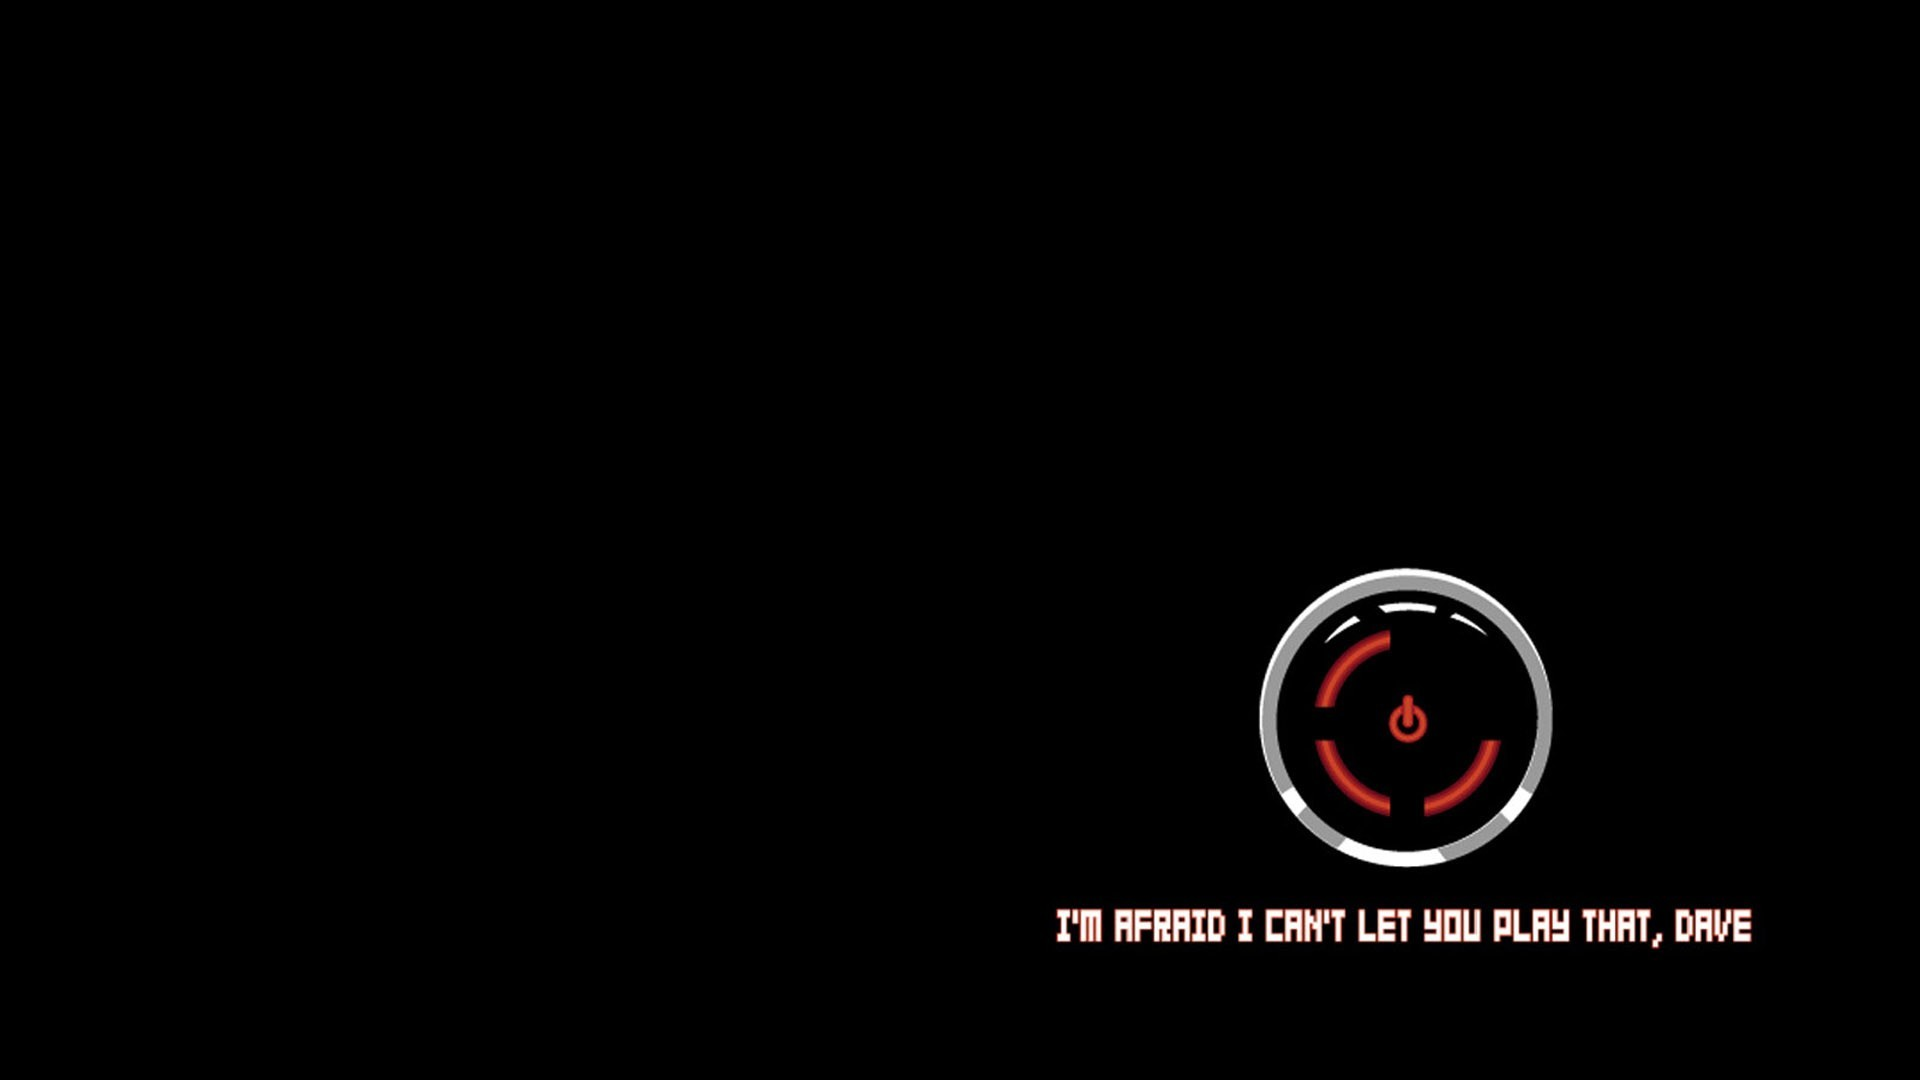 HAL 9000, Xbox, Xbox 360, Red Ring Of Death, Simple, Black, Black  Background, Humor, Video Games, 2001: A Space Odyssey, Robot Wallpapers HD  / Desktop and …